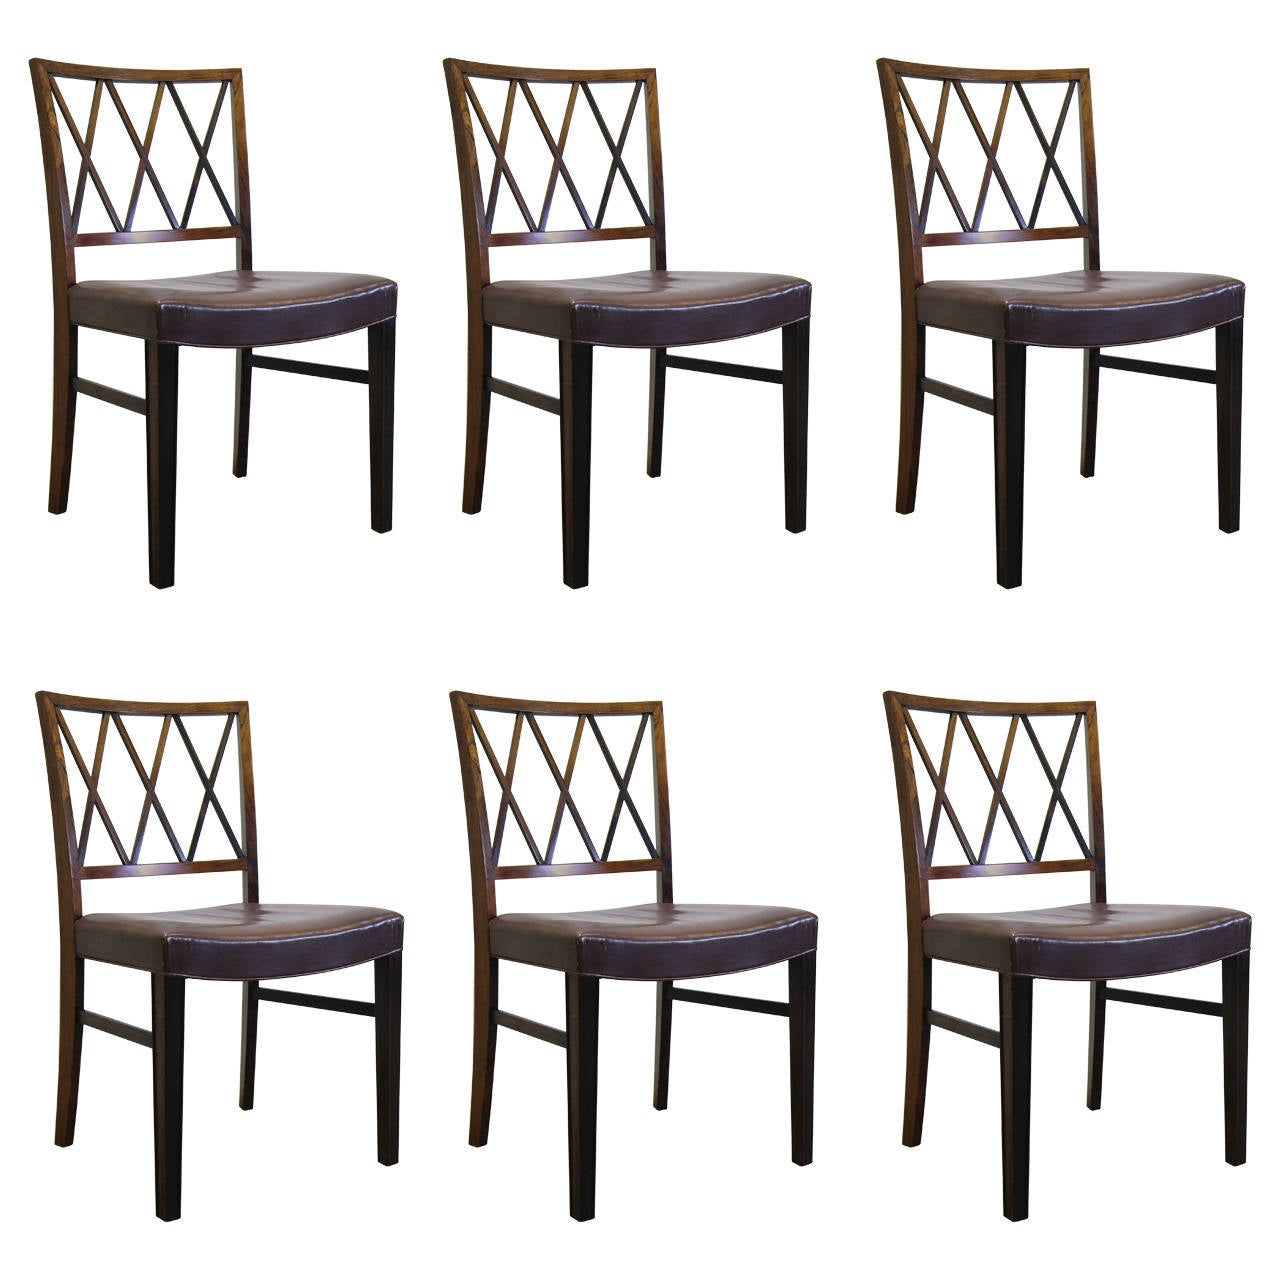 Ole wanscher rosewood dining chairs set of six at 1stdibs - Rosewood dining room furniture ...